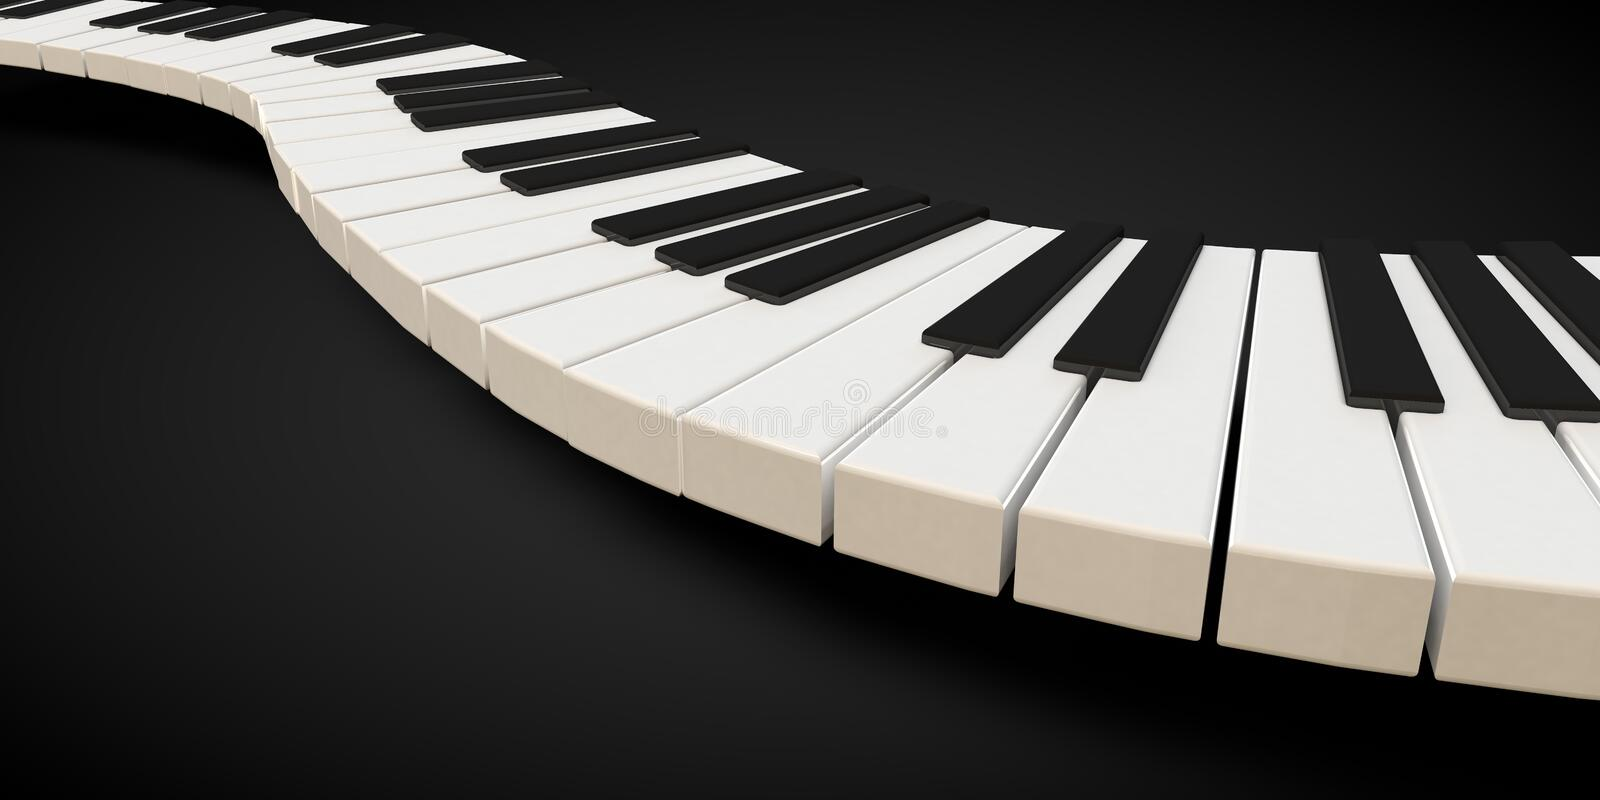 Download 3d Render Of A Piano Keyboard In A Fluid Wavelike Movement Stock Illustration - Illustration: 89146549